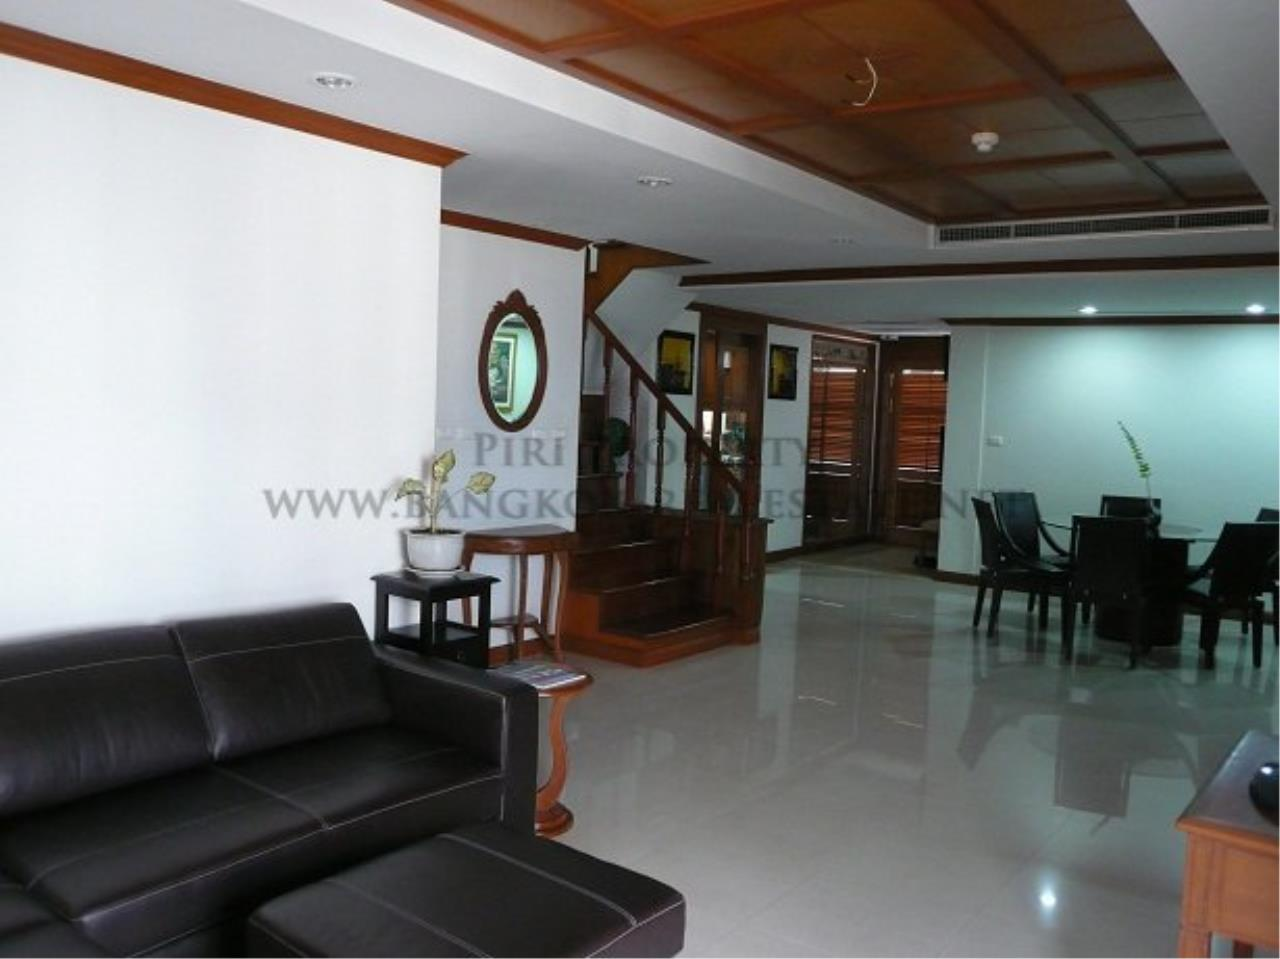 Piri Property Agency's Duplex Condominium in Asoke for Sale - 3 Bedroom 20